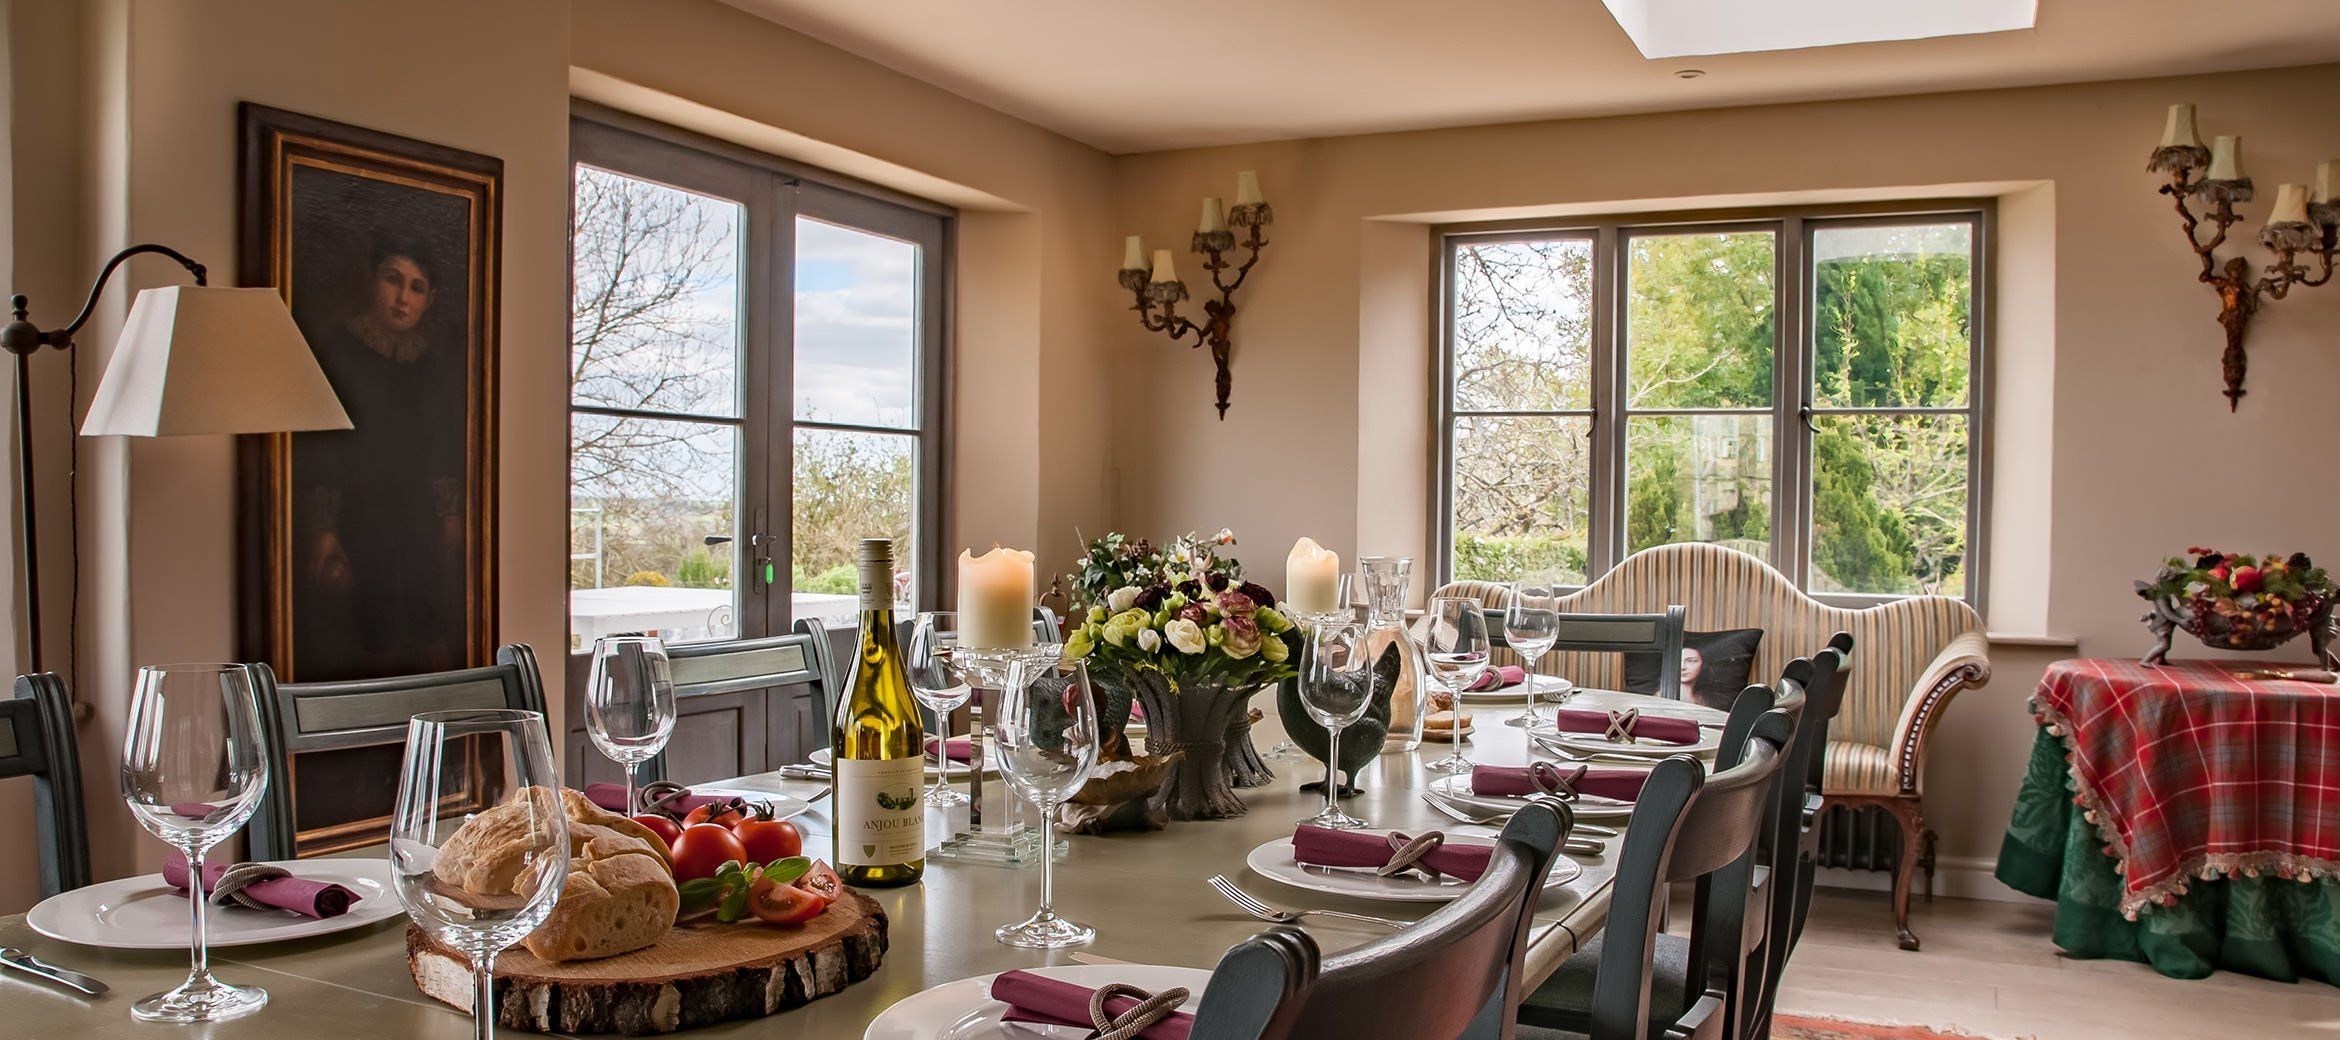 French Doors In Dining Room Photos On Fabulous 83 For